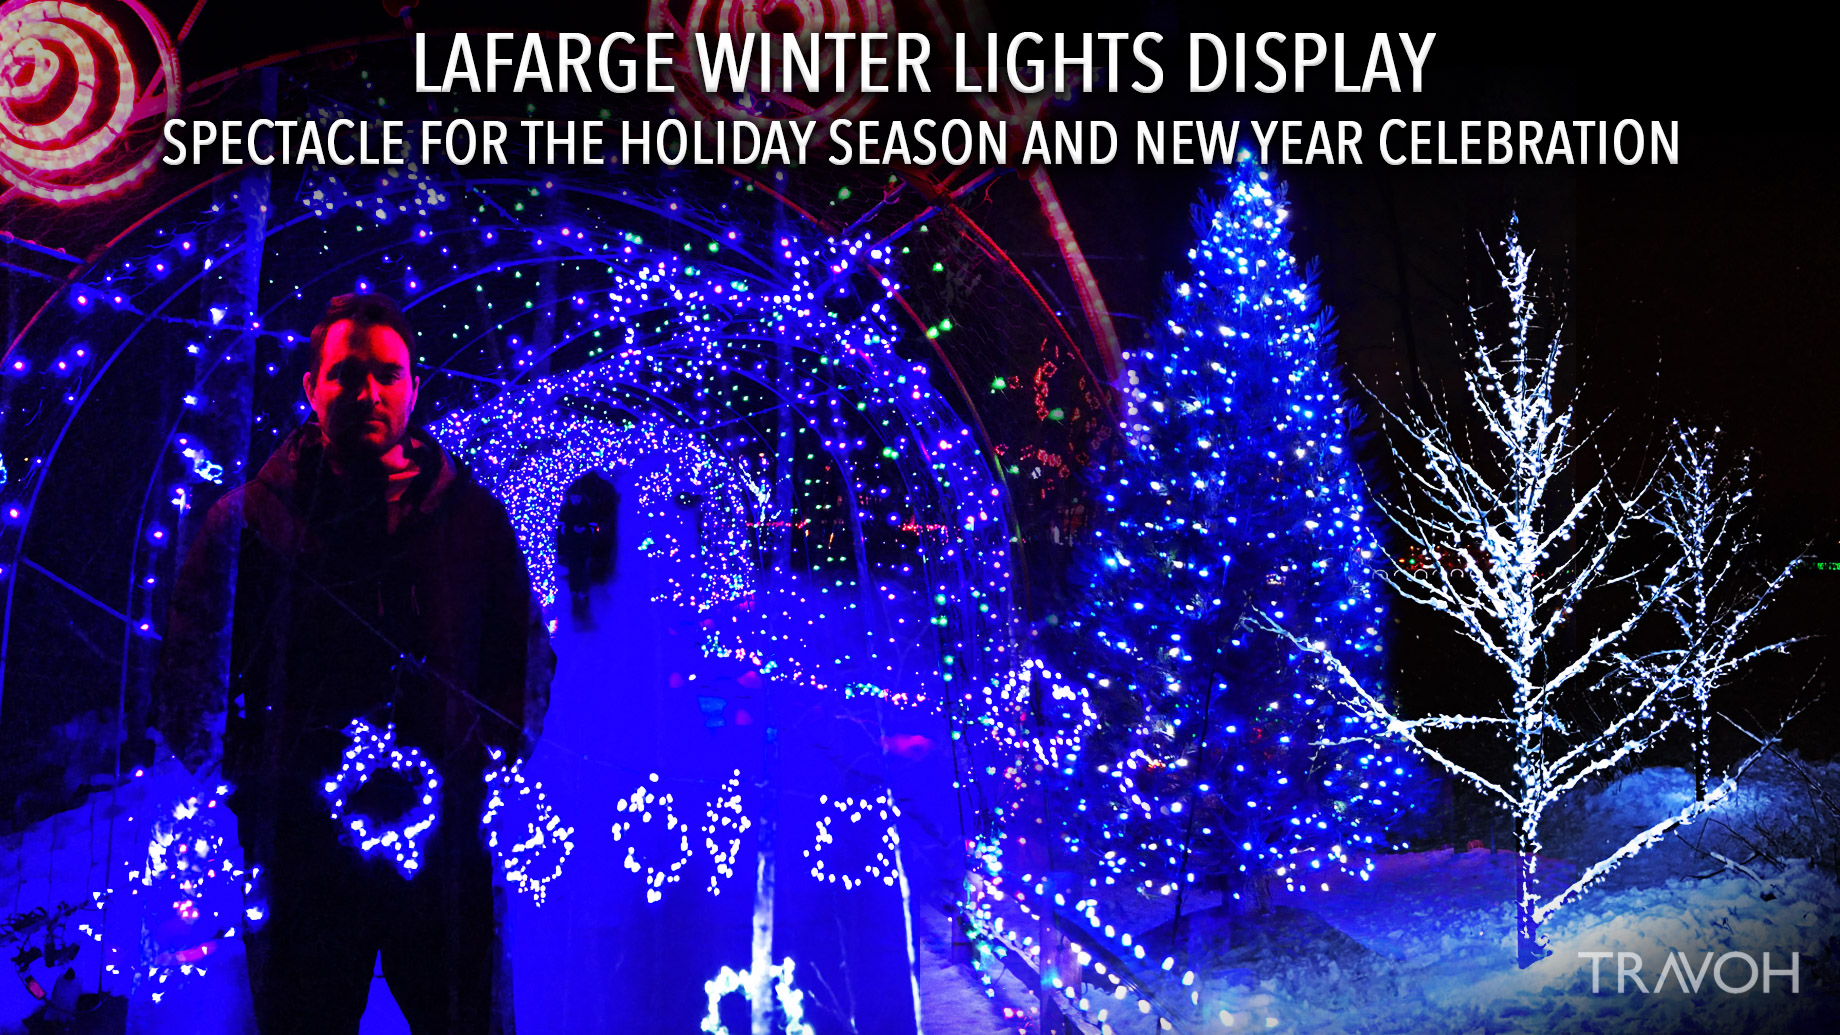 Lafarge Winter Lights Display – Spectacle for the Holiday Season and New Year Celebration – Marcus Anthony